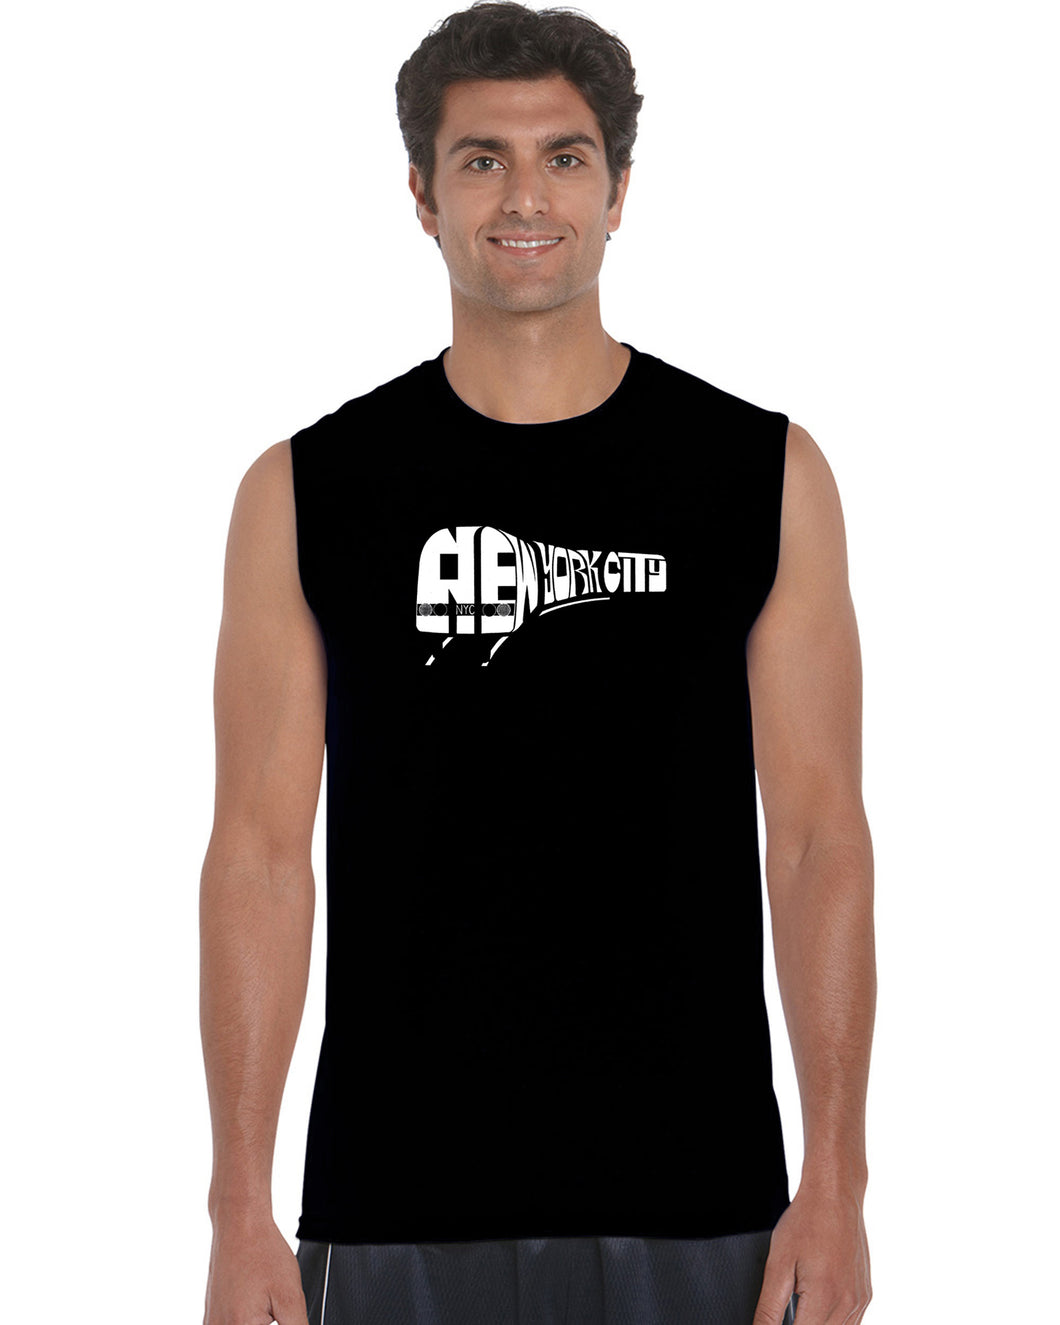 LA Pop Art Men's Word Art Sleeveless T-shirt - NY SUBWAY